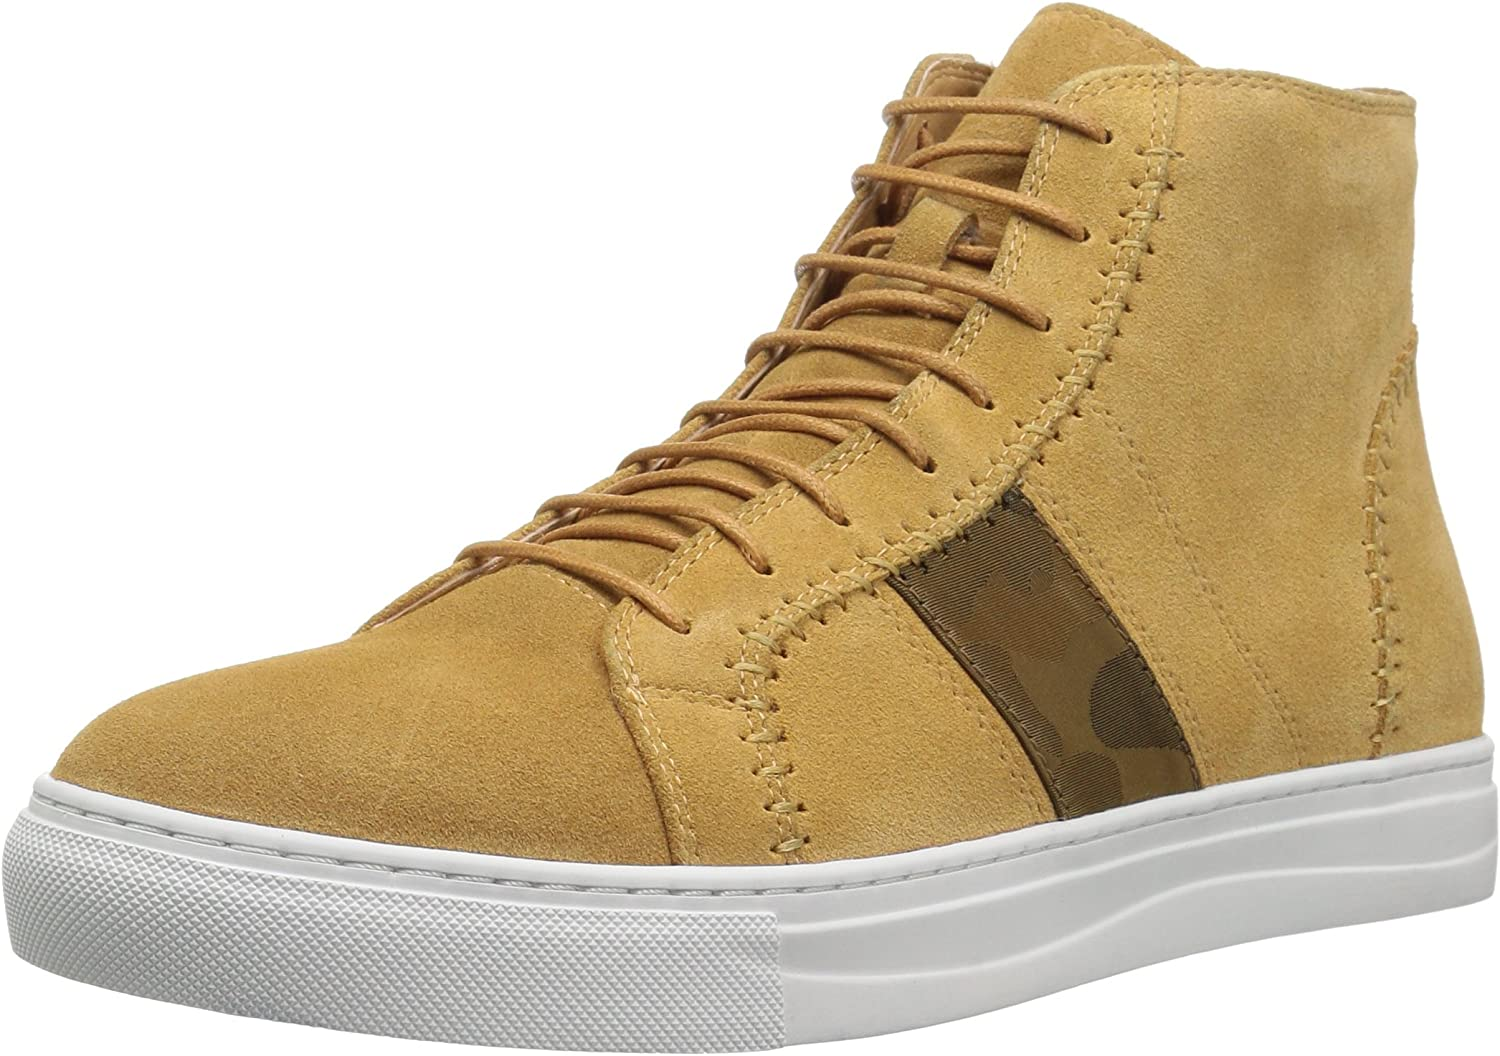 English Laundry Mens Assotswell Sneaker